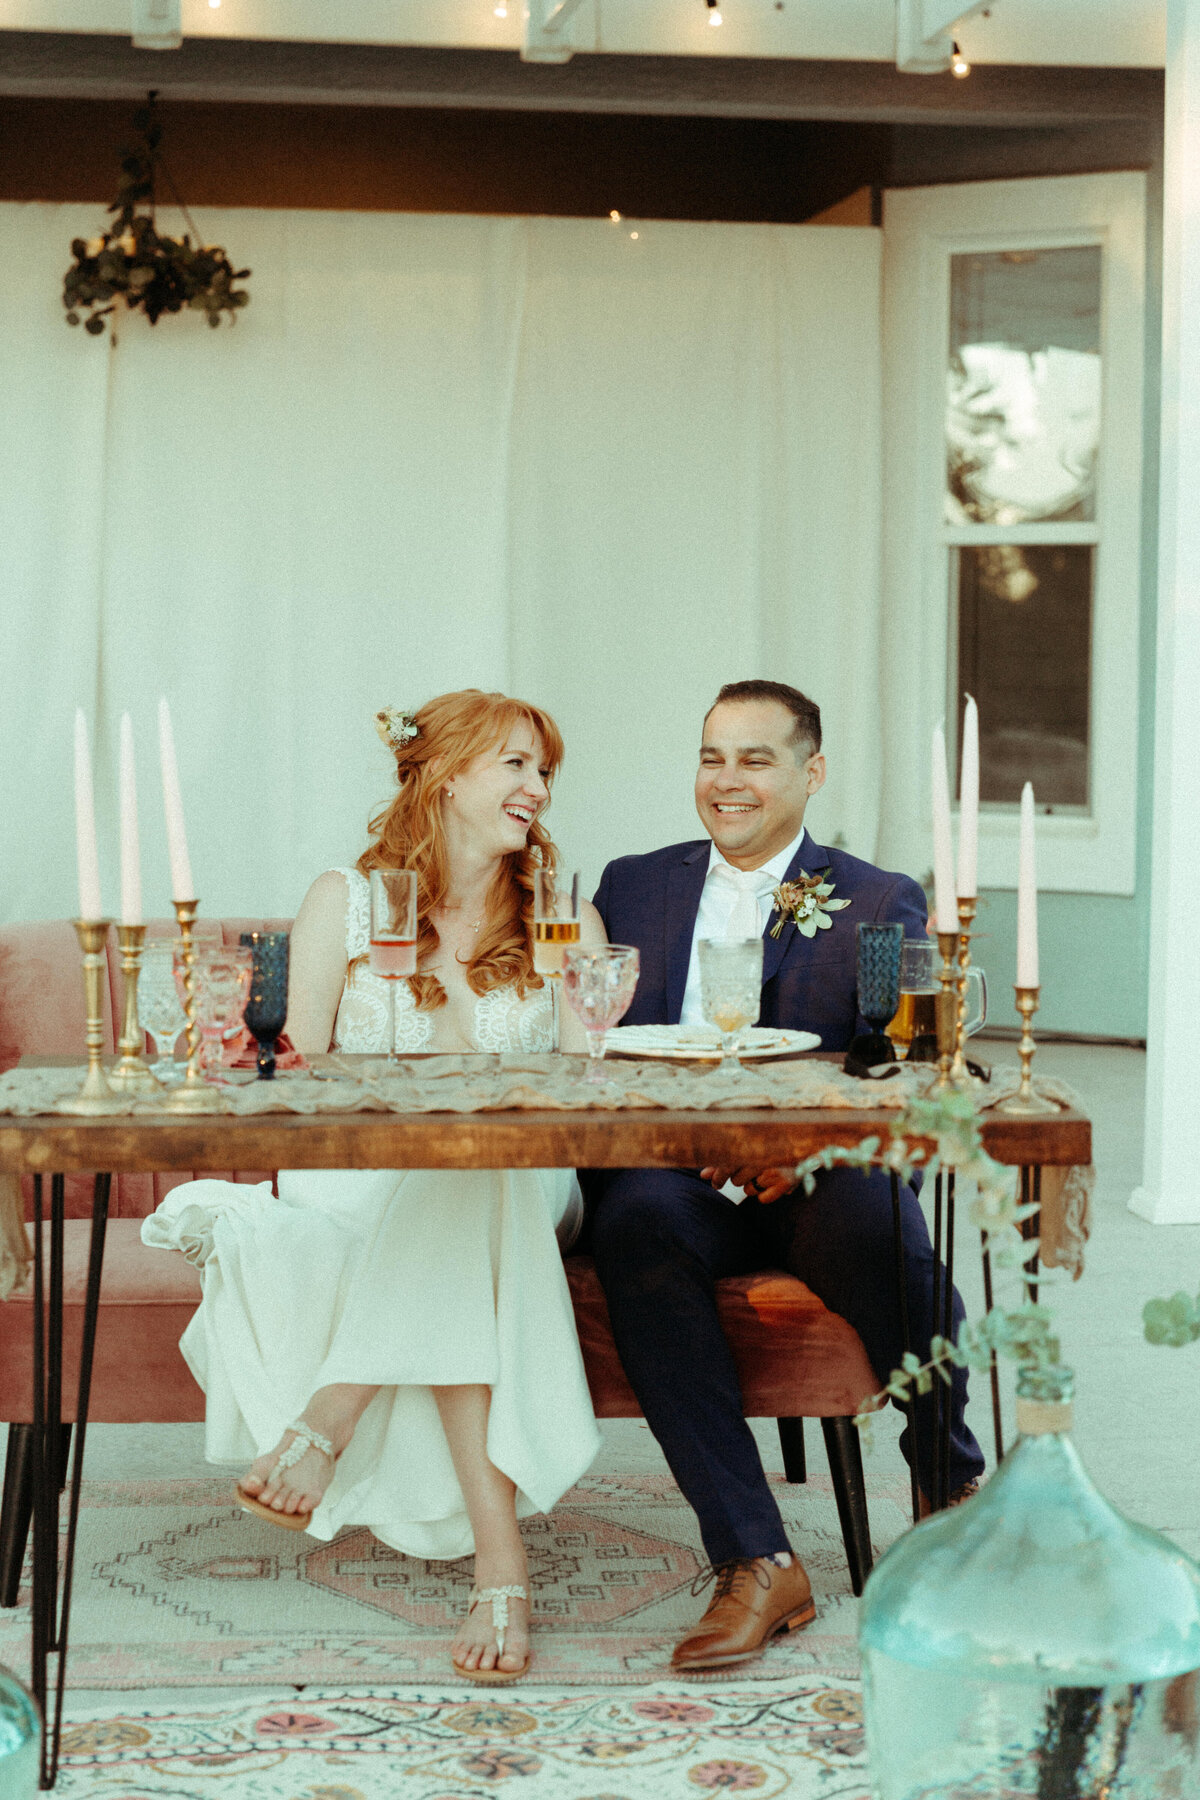 California-elopement-photographer-Autumn-Marie-3-2